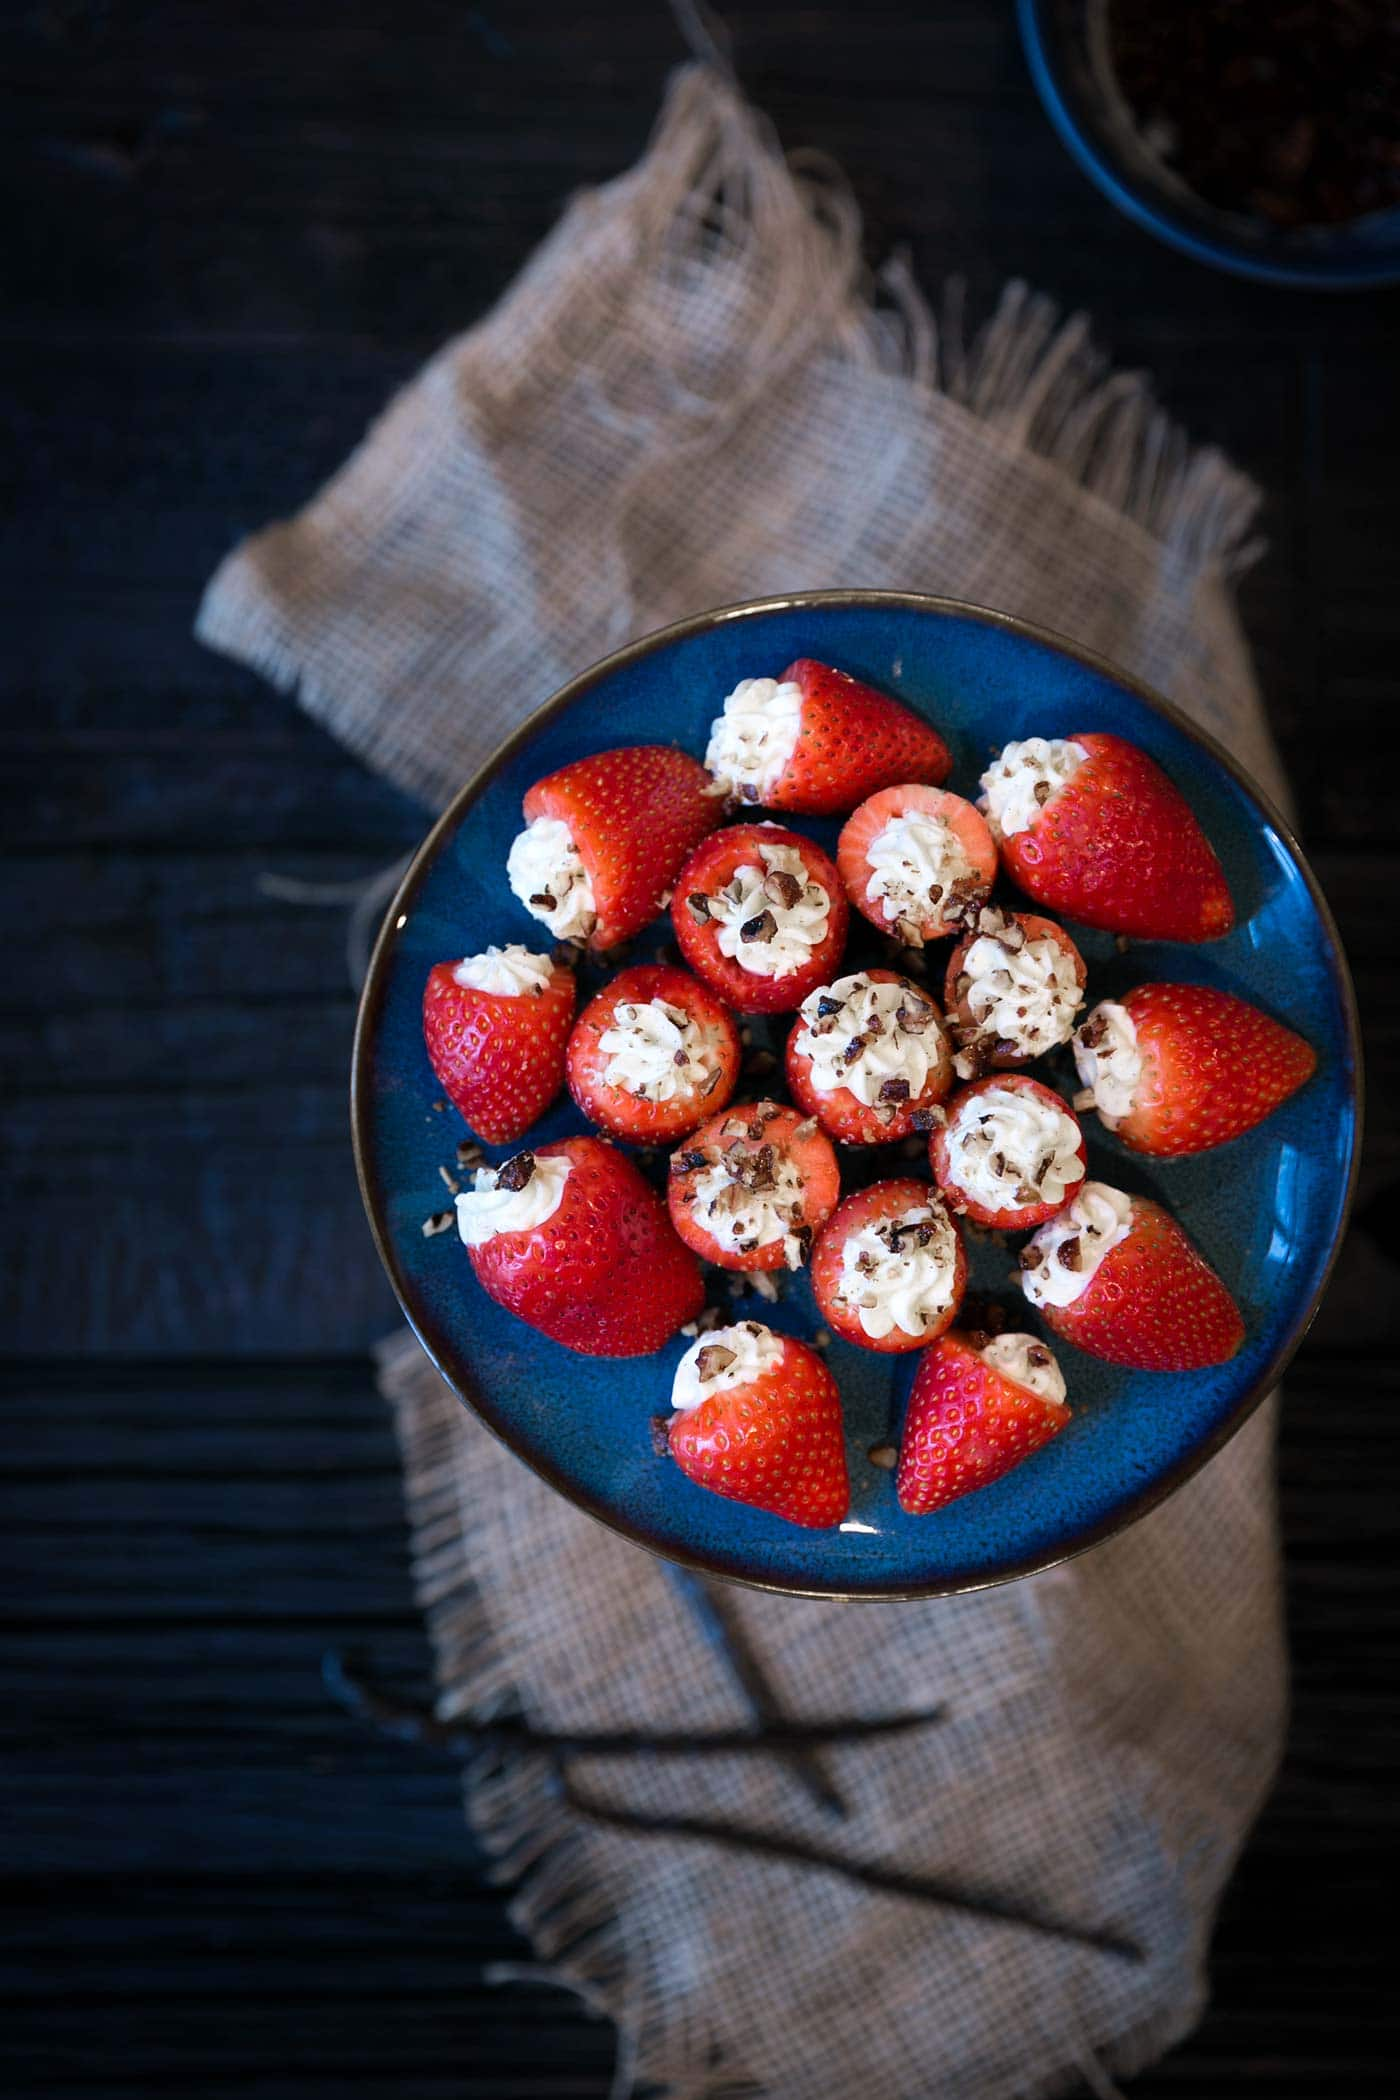 Vanilla Mascarpone Stuffed Strawberries are an easy-to-prepare, light dessert that your guests will adore! Get the recipe from Savory Simple.